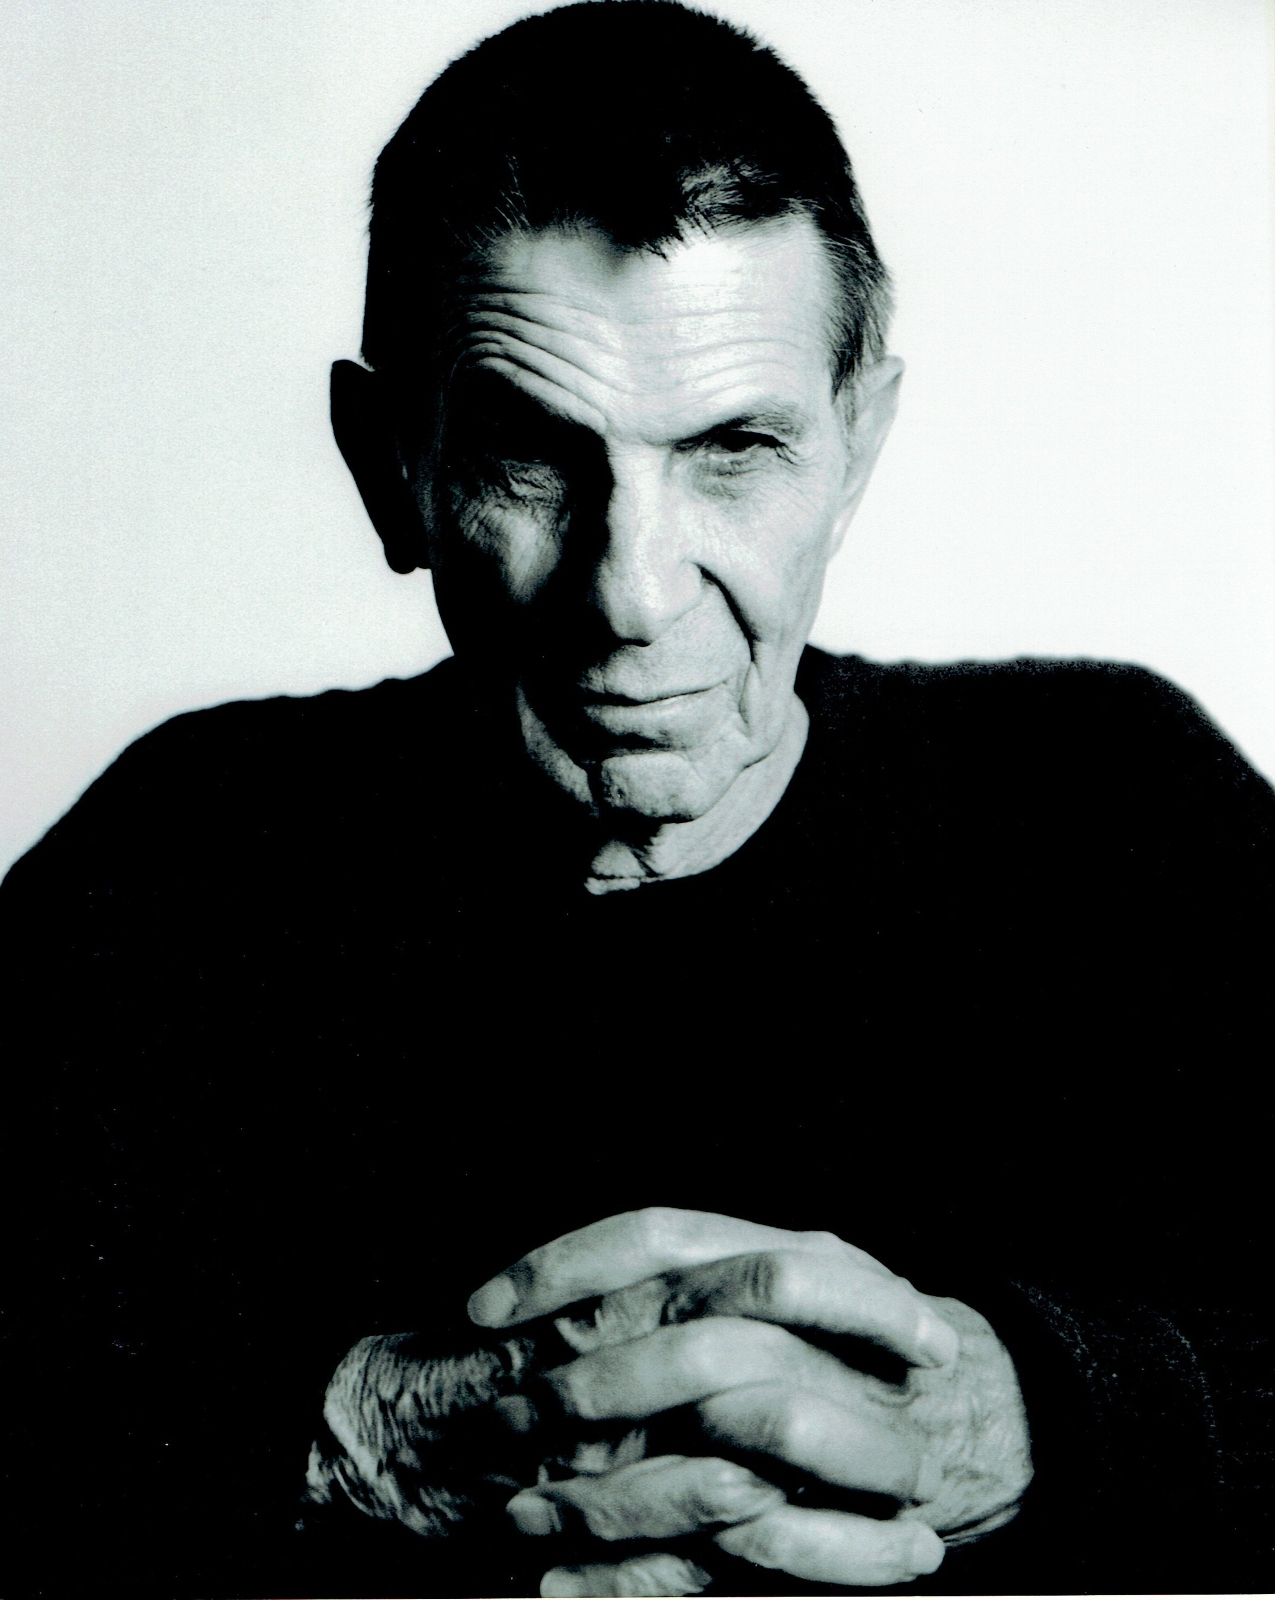 Philips and Leonard Nimoy documentary